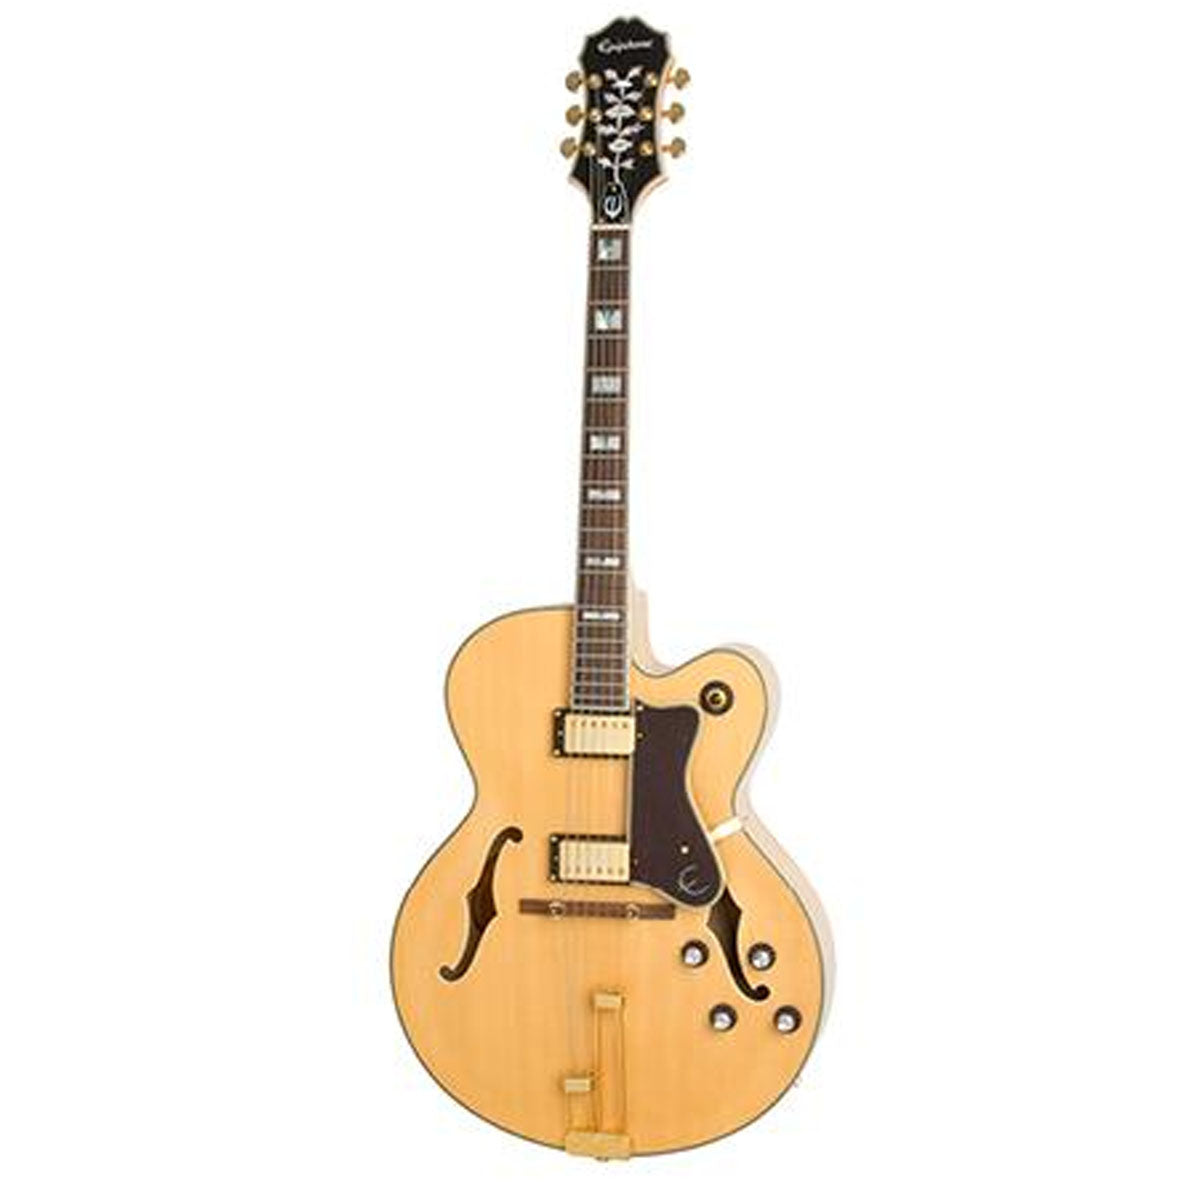 Epiphone Broadway Electric Guitar HollowBody Vintage Natural - ETBWVNGH1